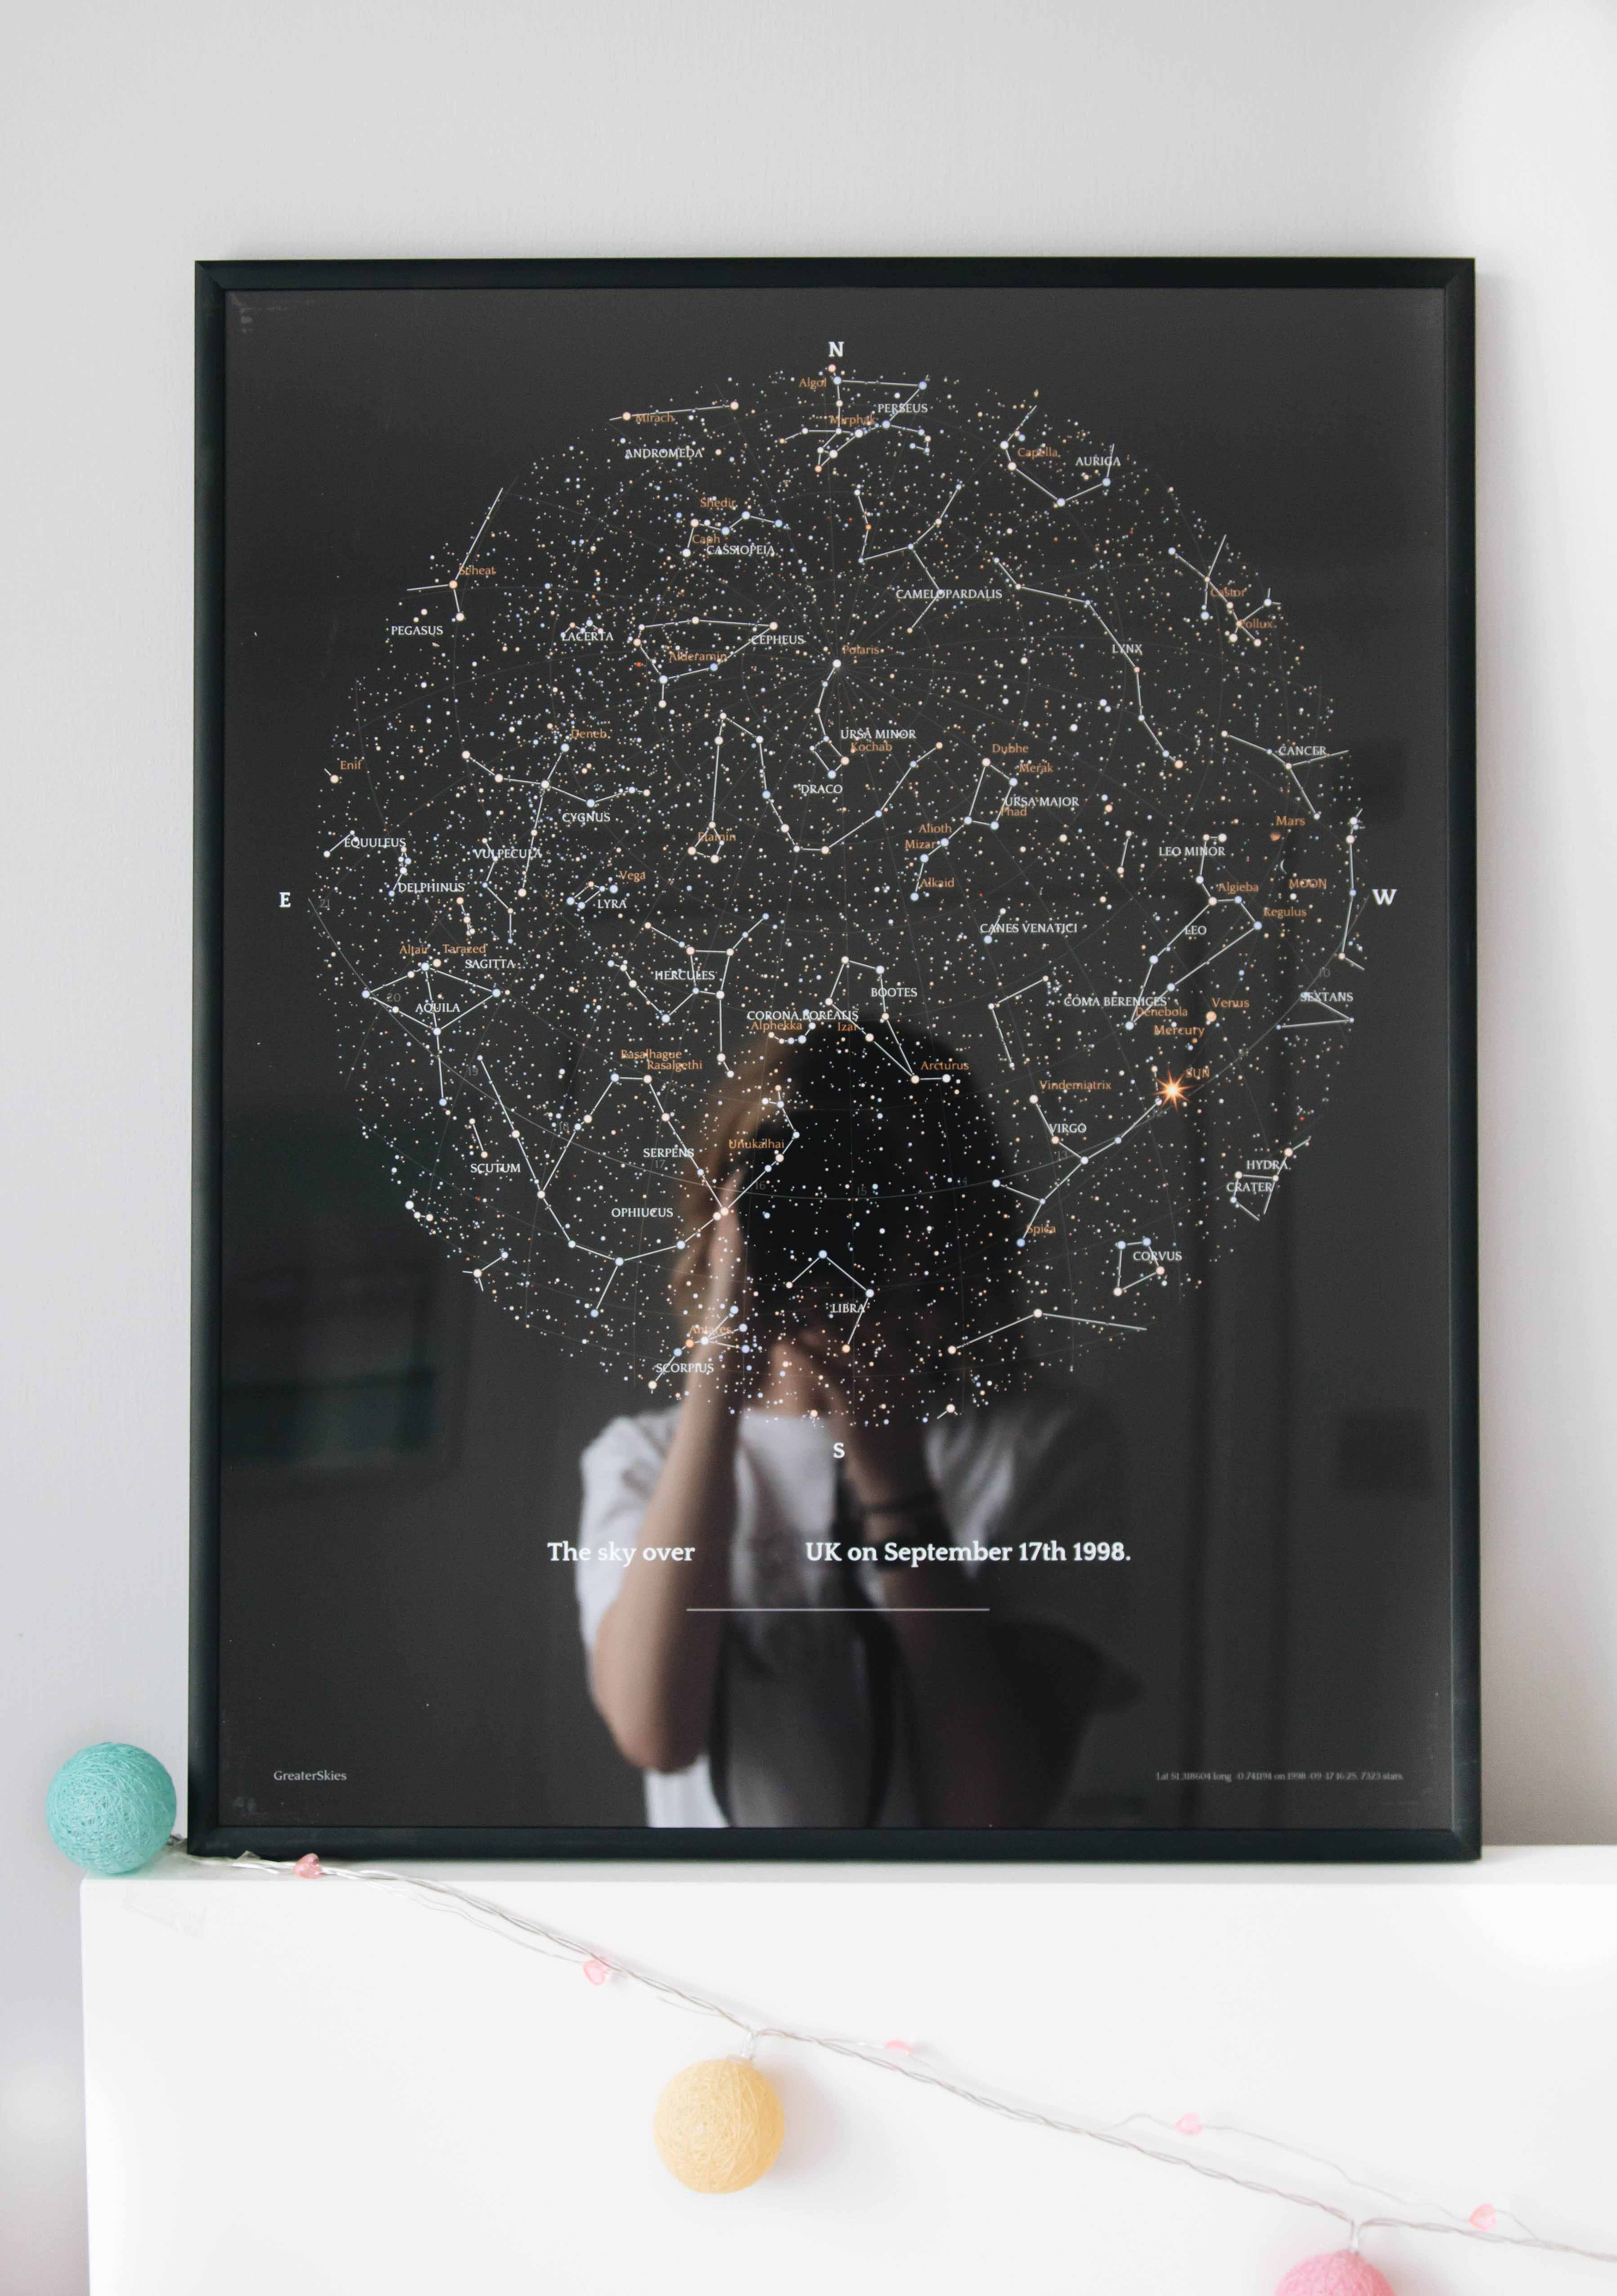 forever september, night sky star map, stars, lifestyle, print, greater skies, chatty post, beauty, fashion